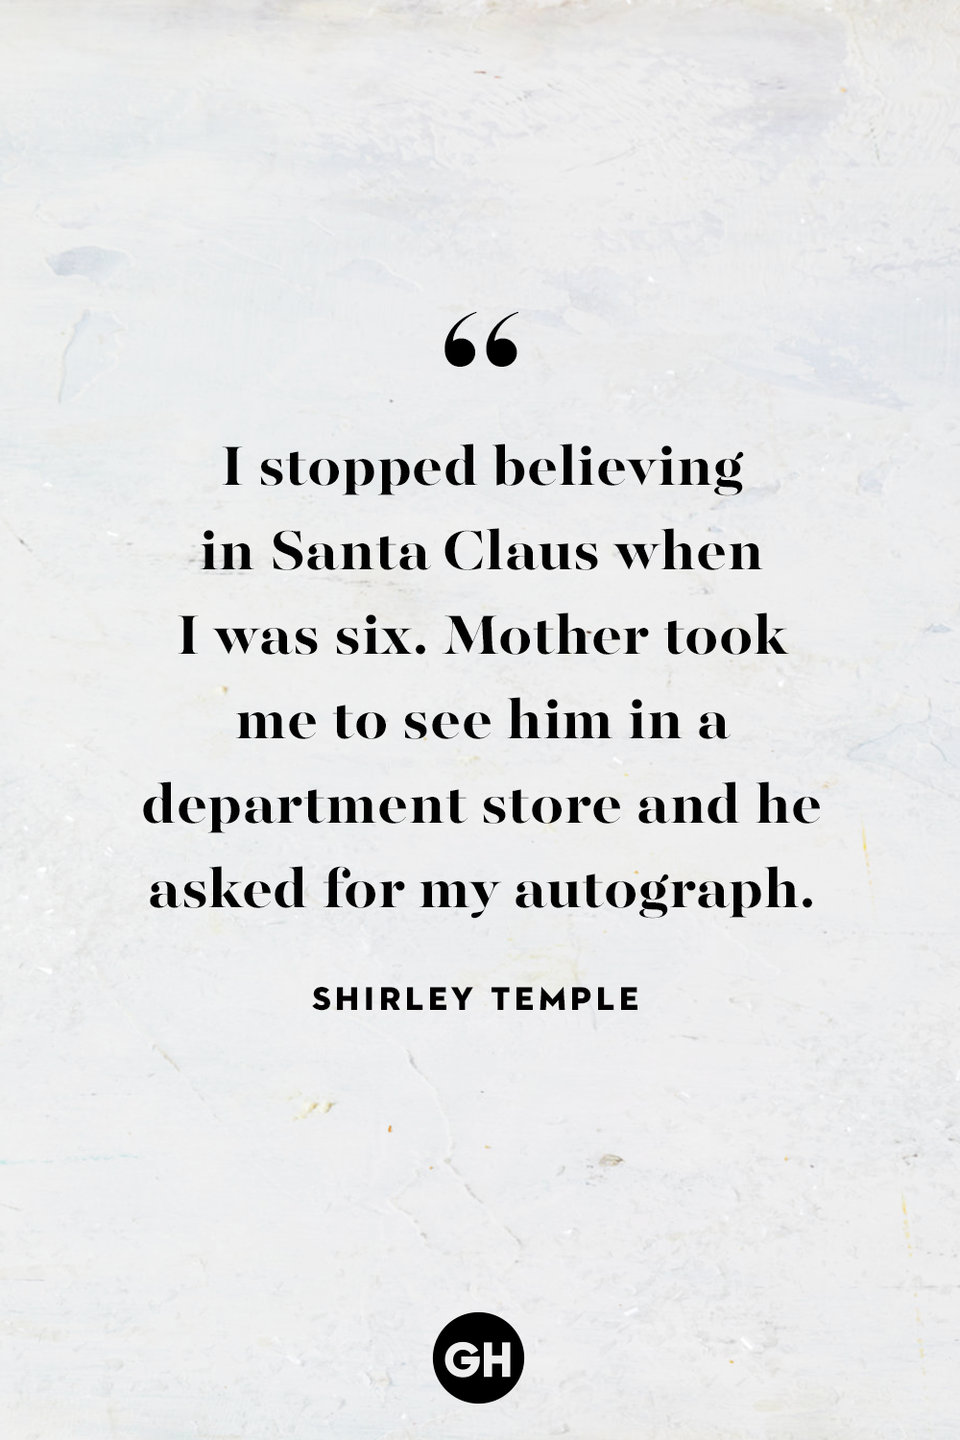 <p>I stopped believing in Santa Claus when I was six. Mother took me to see him in a department store and he asked for my autograph.</p>